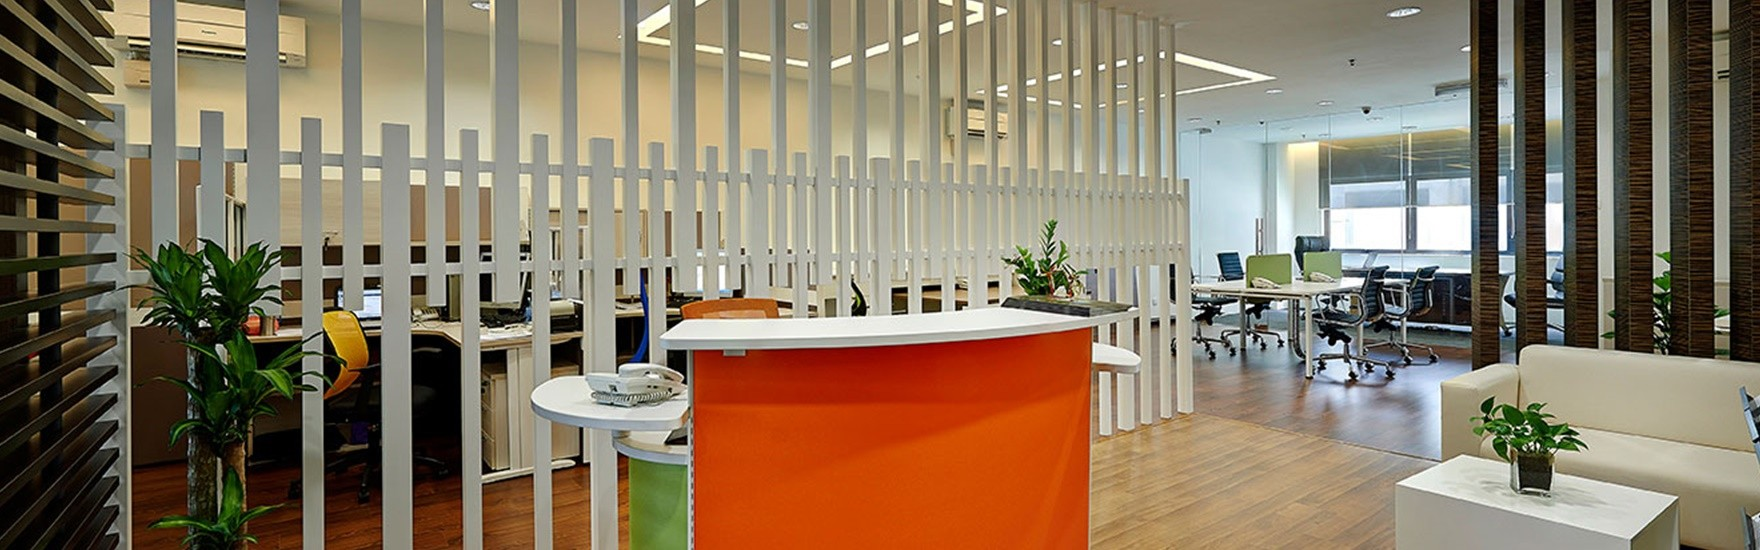 Office system furniture Malaysia manufactured by office furniture manufacturer Malaysia